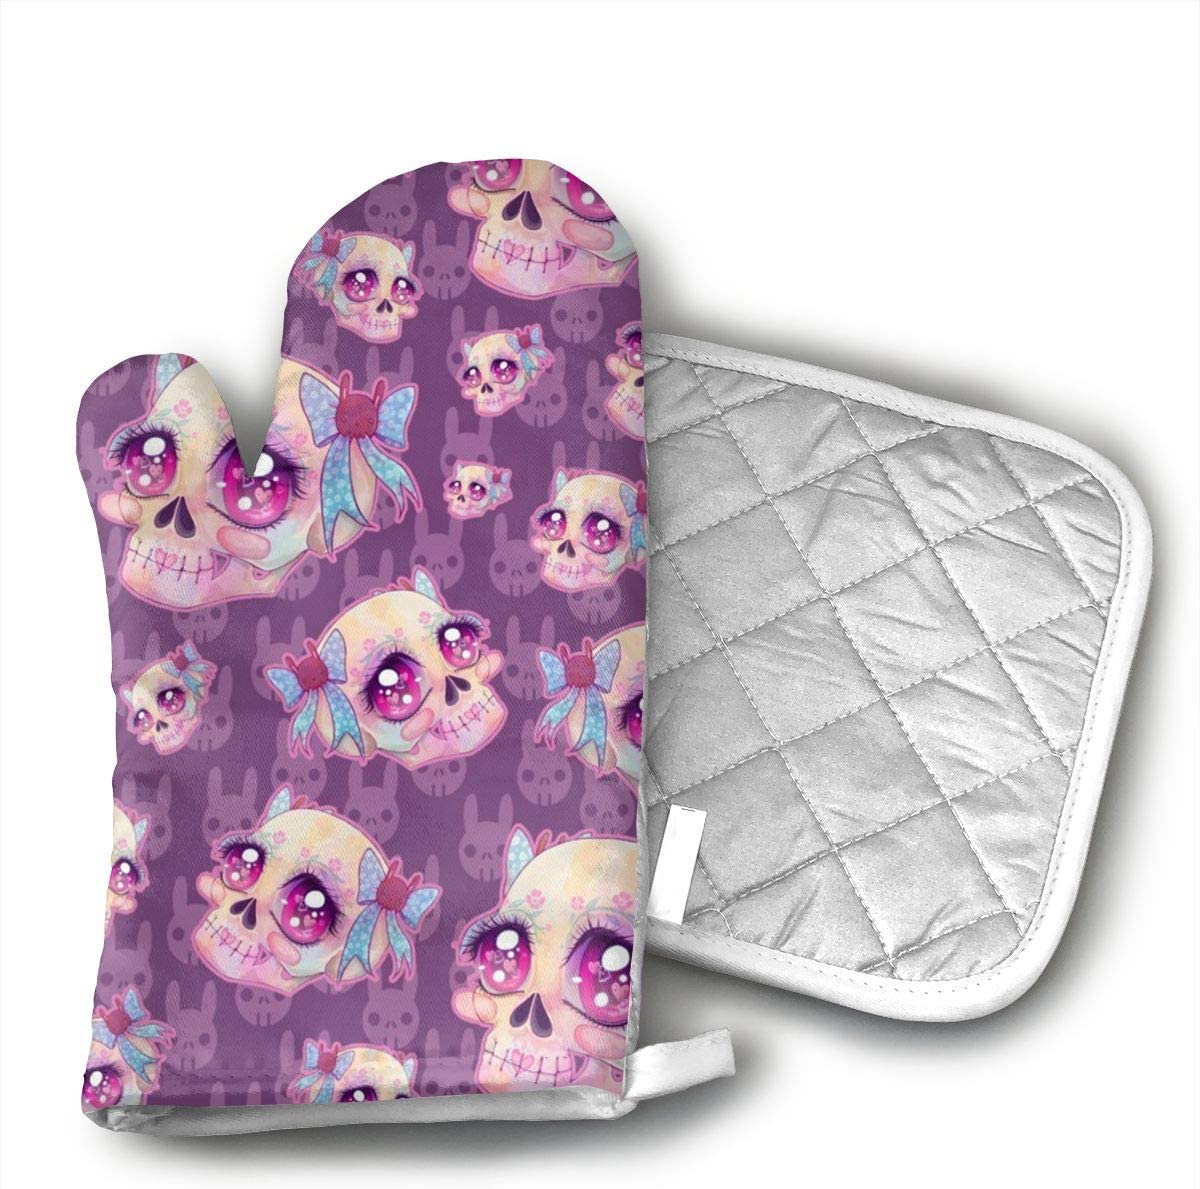 TRENDCAT Cute Skulls Oven Mitts and Potholders (2-Piece Sets) - Extra Long Professional Heat Resistant Pot Holder & Baking Gloves - Food Safe